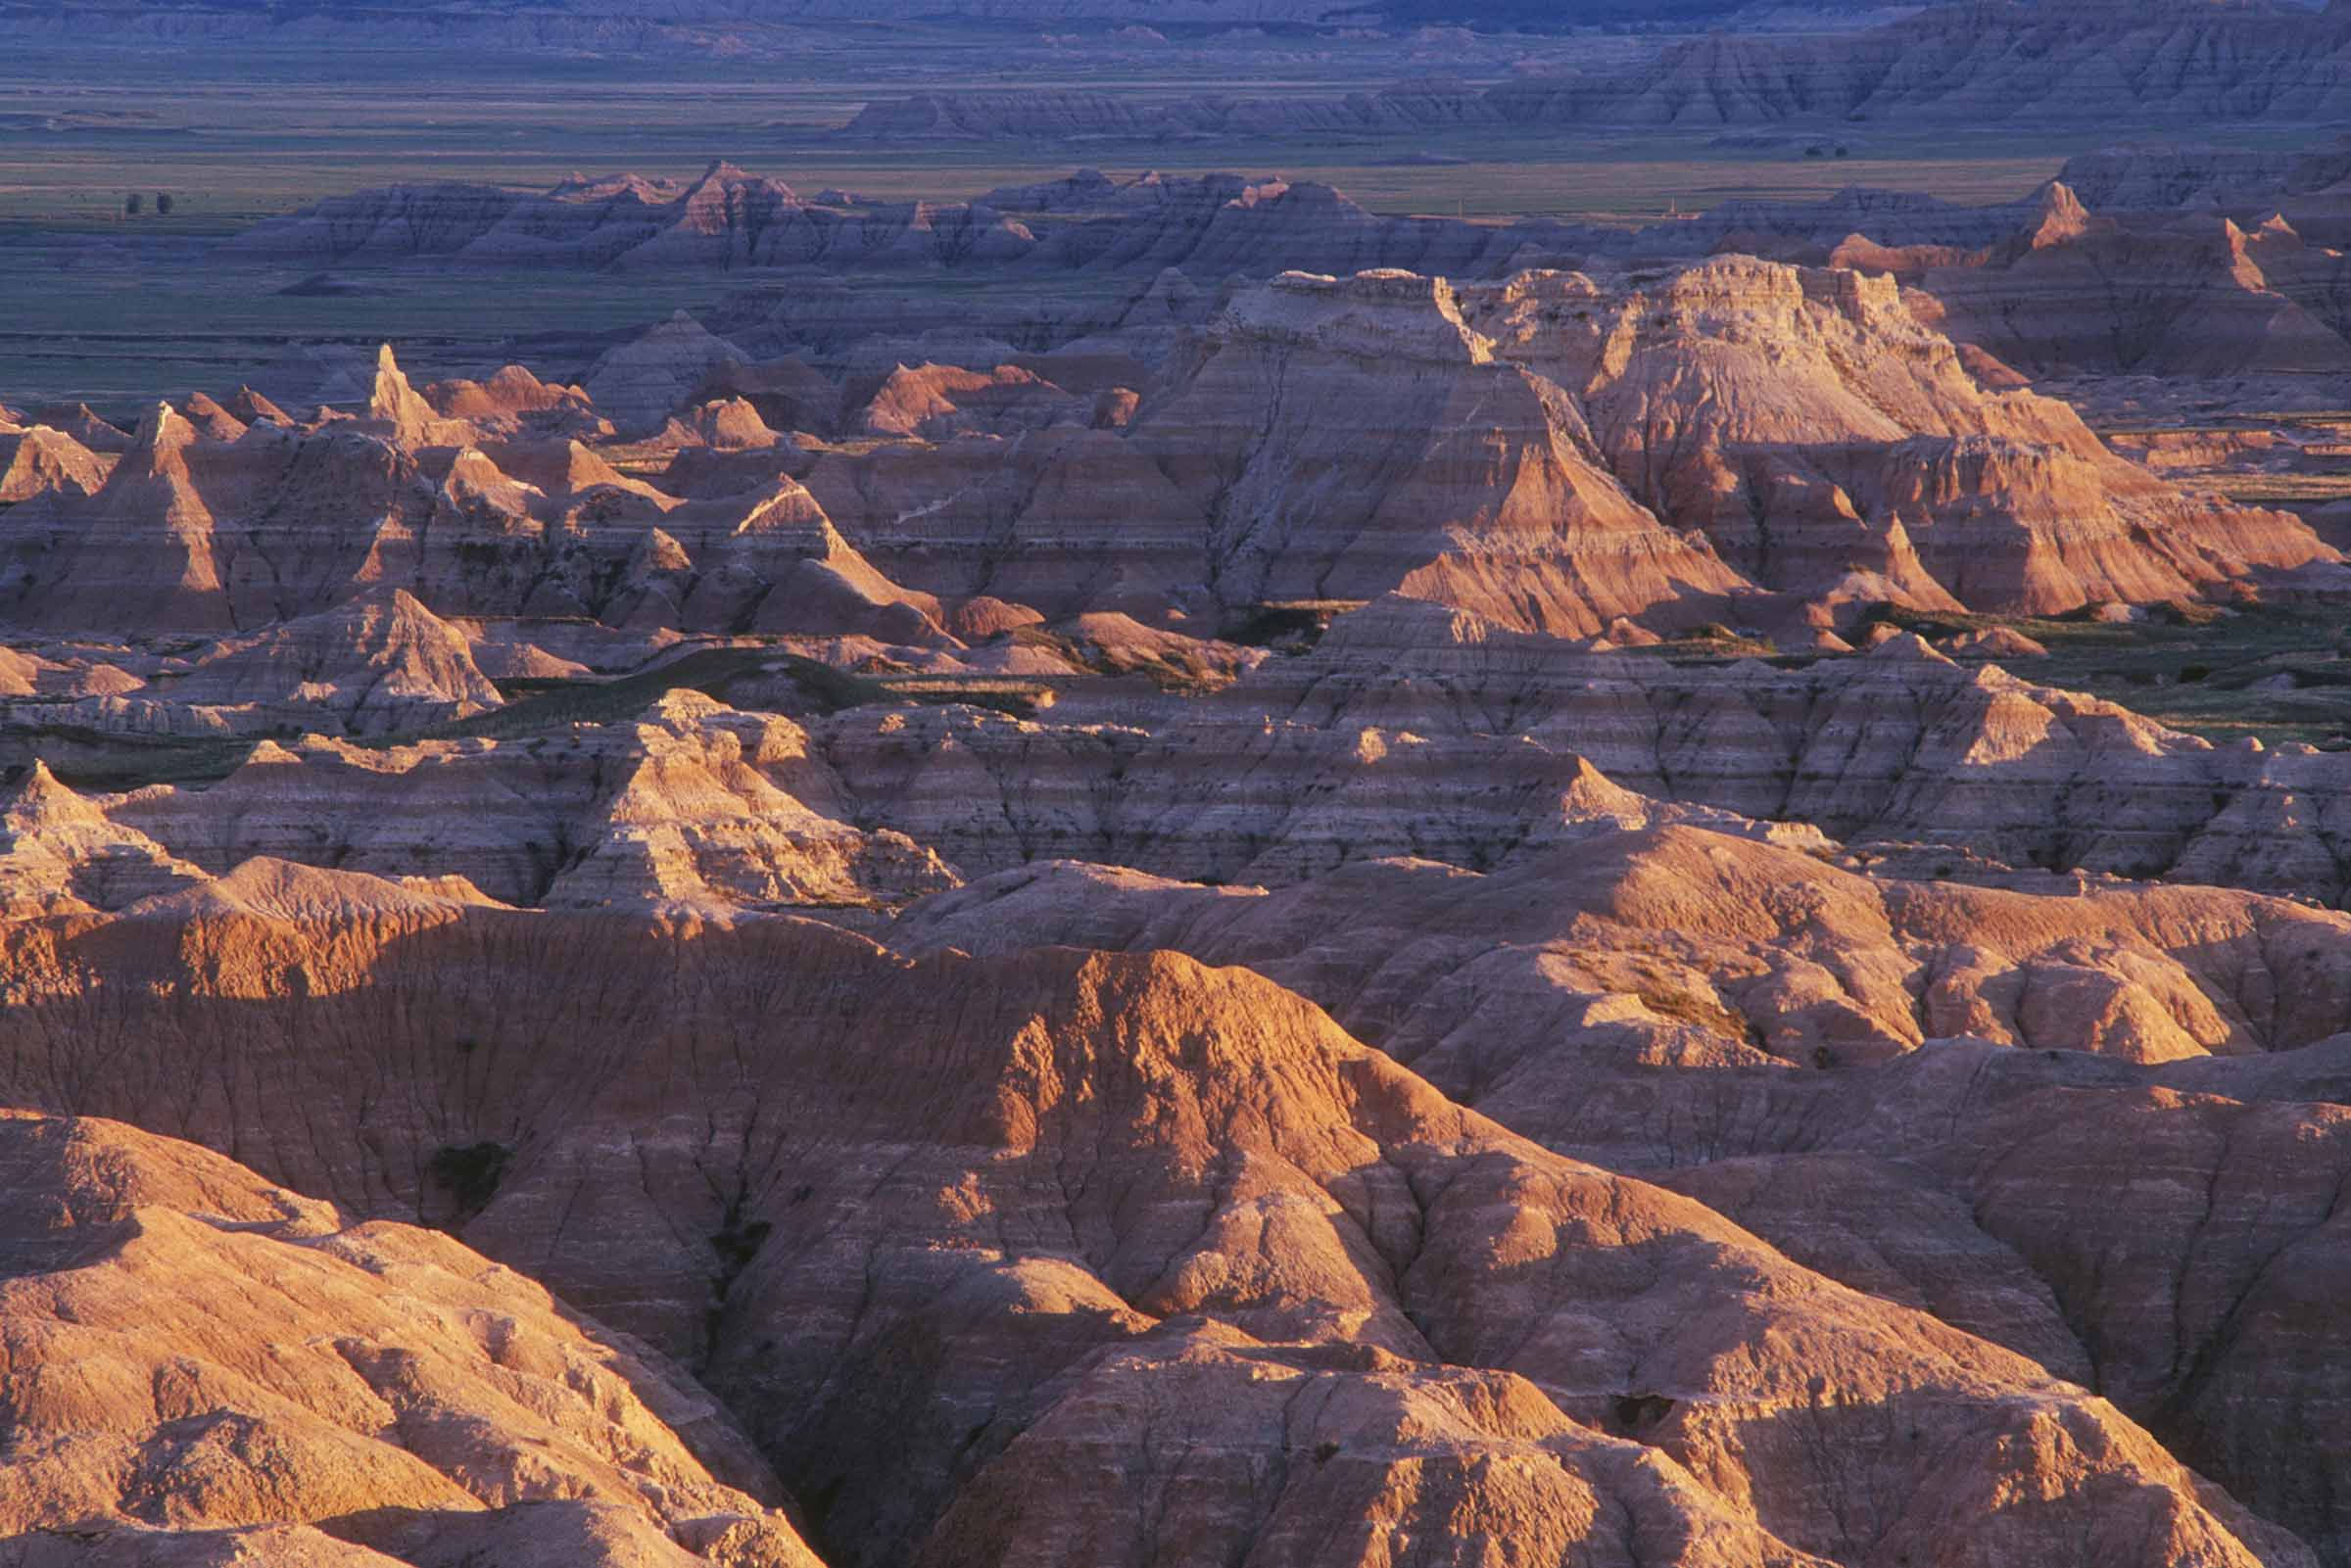 Badlands at sunset from Sage Creek Basin Overlook; Badlands National Park, South Dakota.